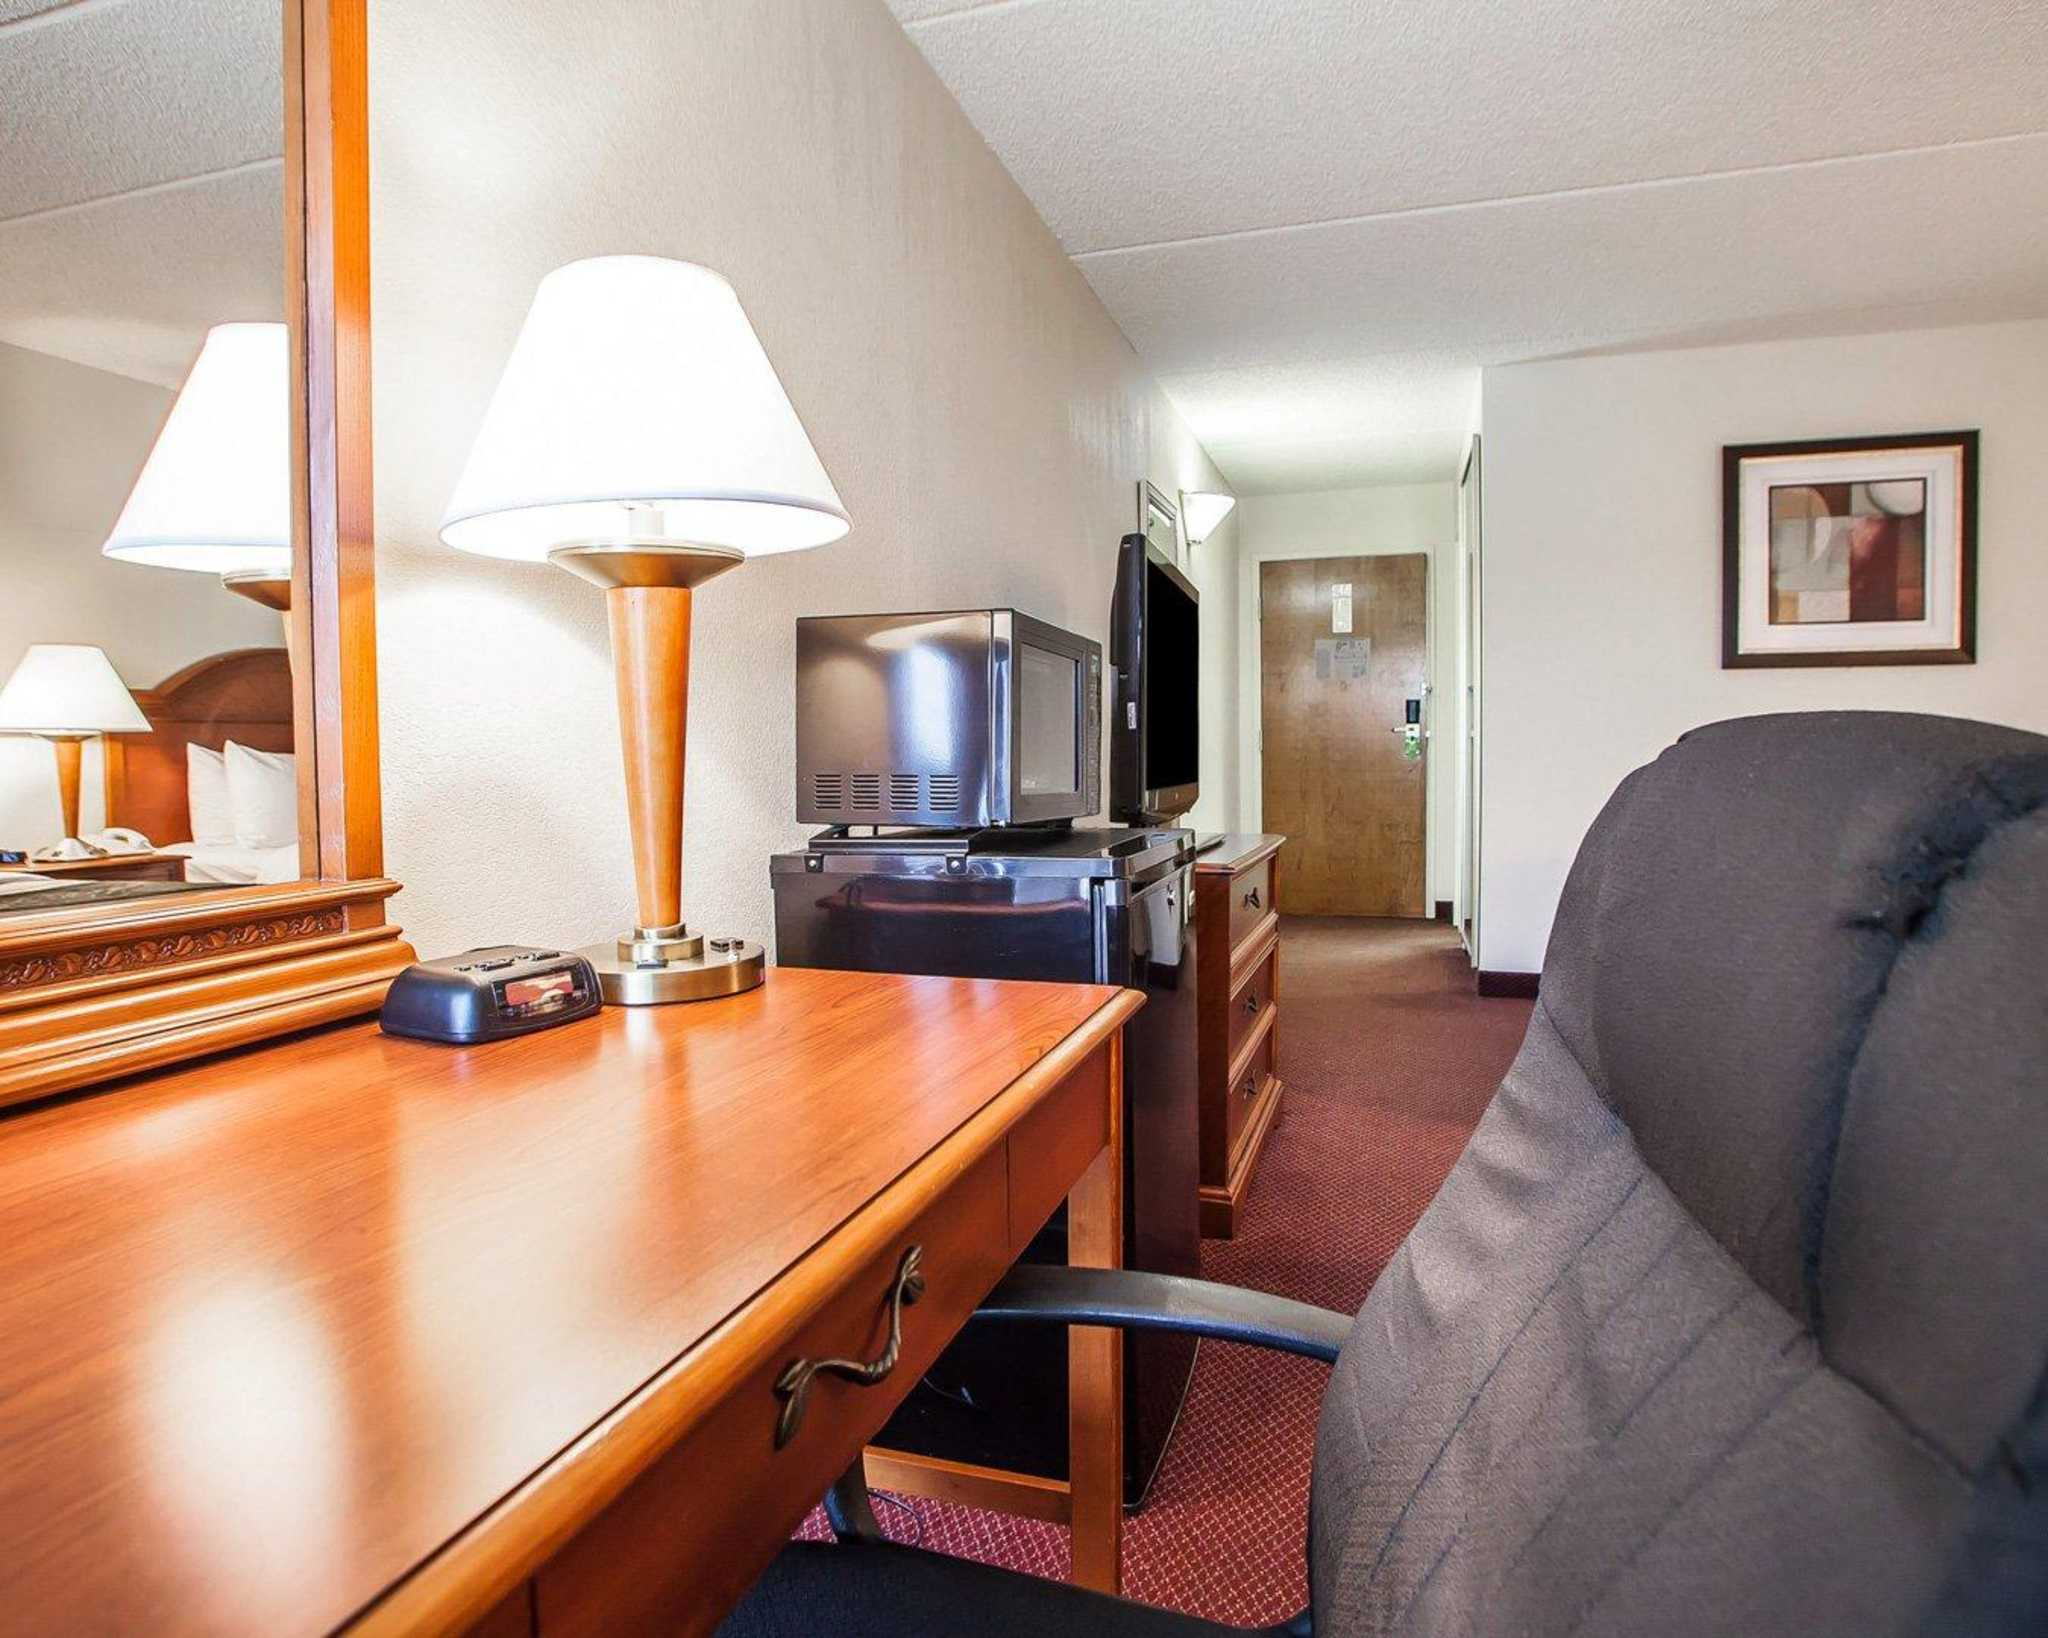 Comfort Inn Lehigh Valley West image 4